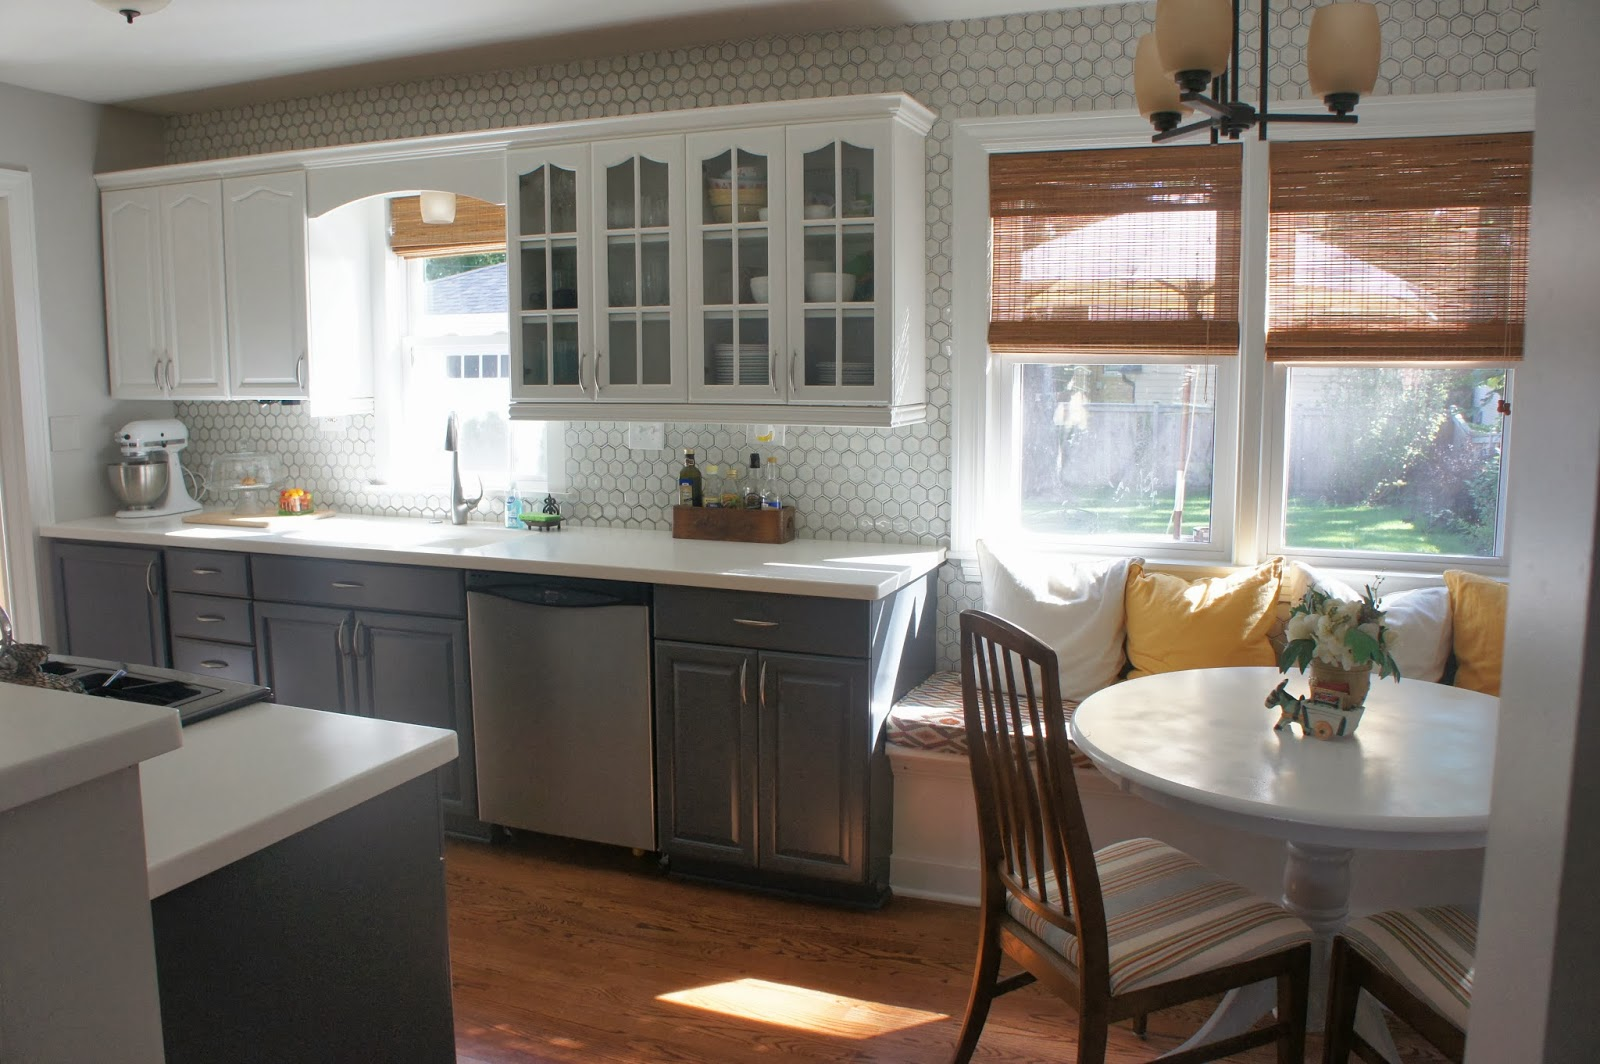 Unique gray and white kitchen makeover with painted cabinets LoveLee Homemaker featured on Remodelaholic